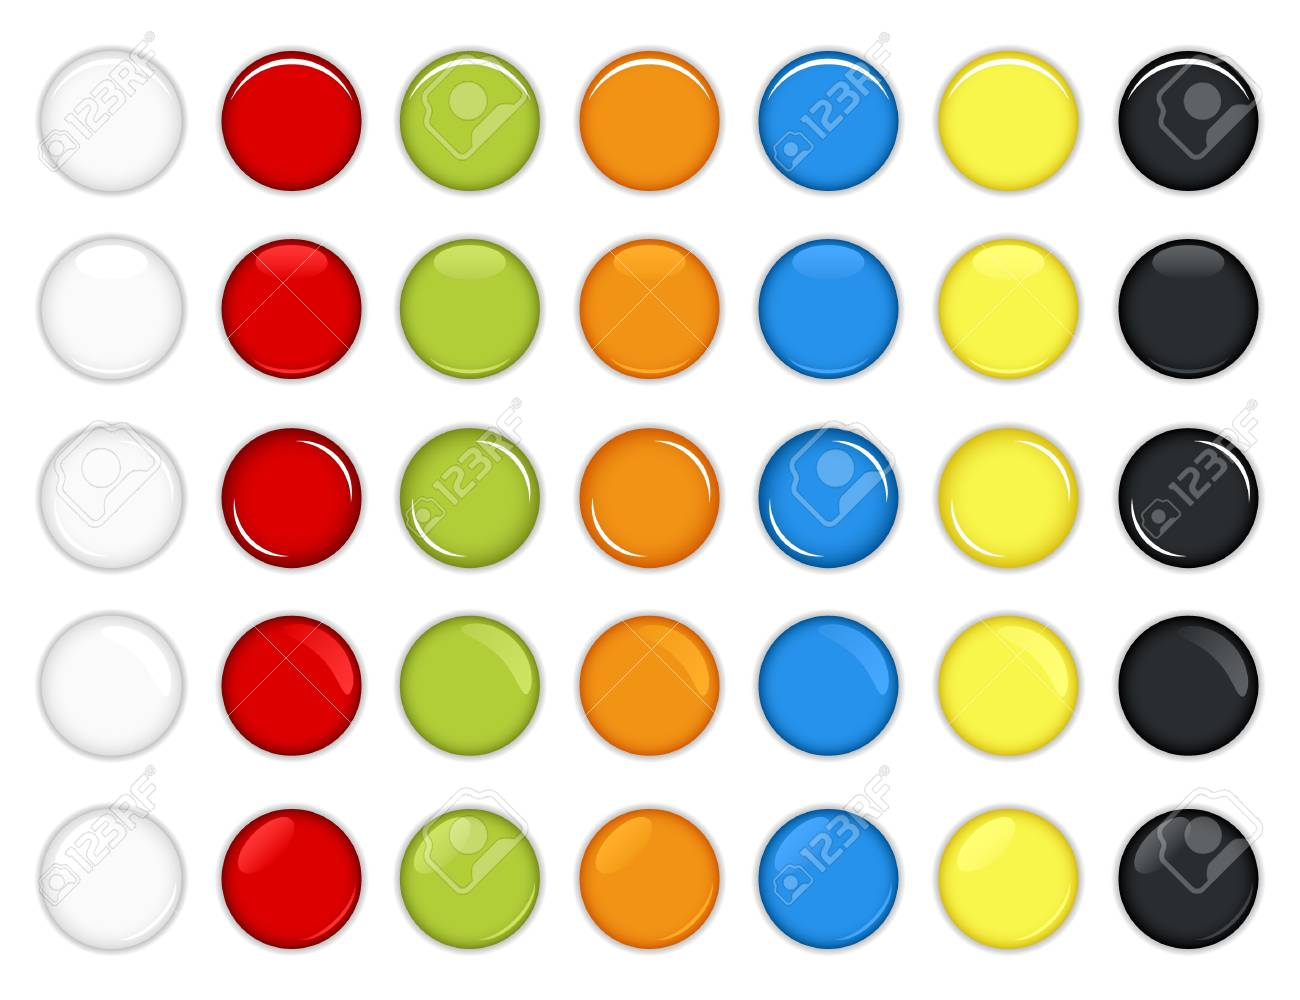 Colorful Glossy Round Buttons Vector Stock Vector - 7796695